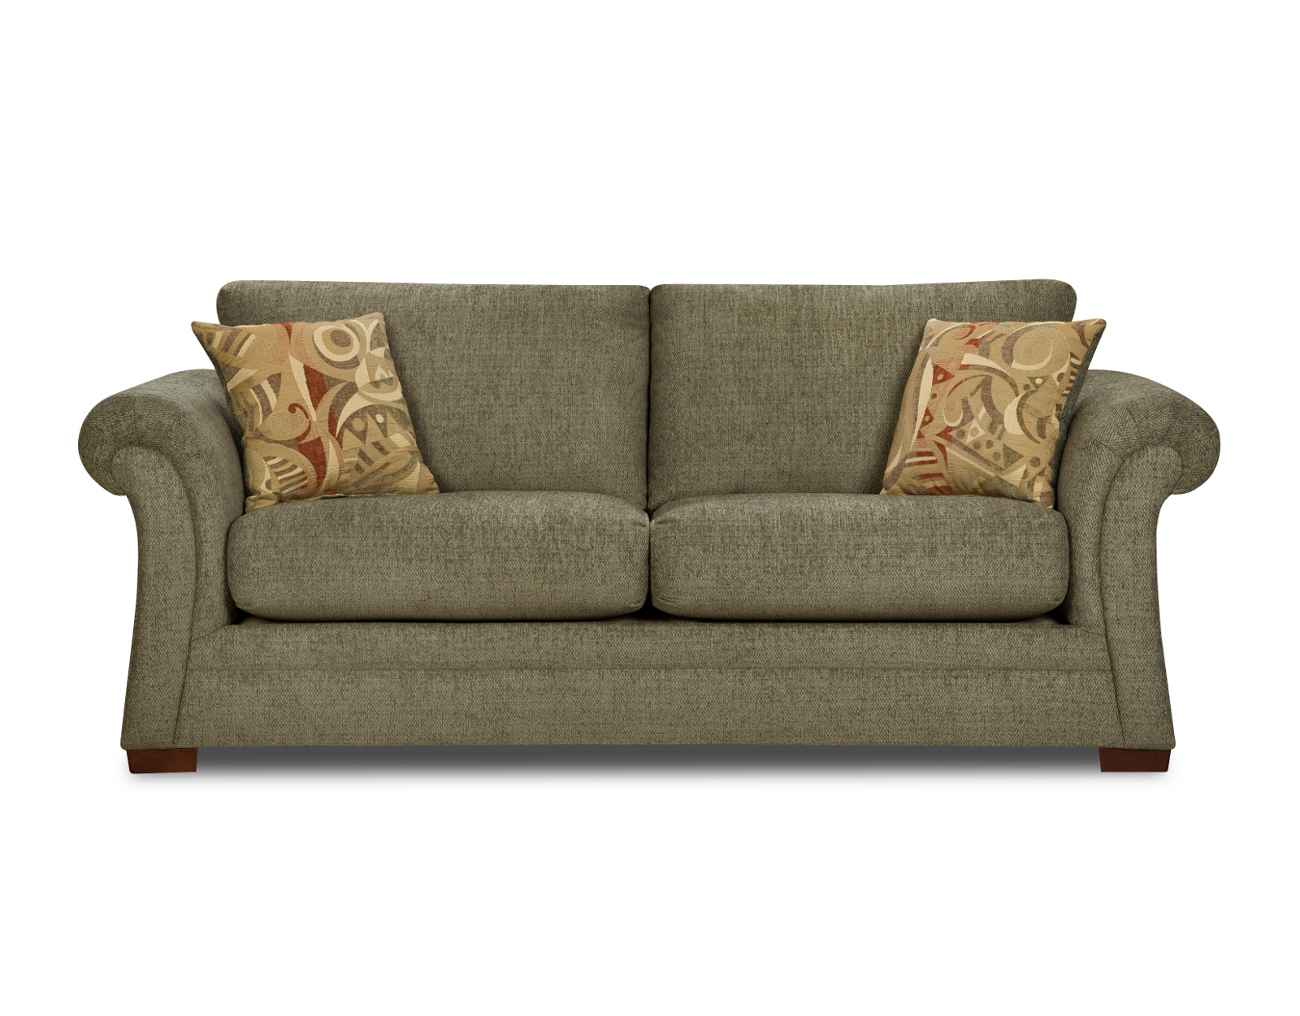 cheap sofas and couches on Discount Green Sofa For Your Home title=